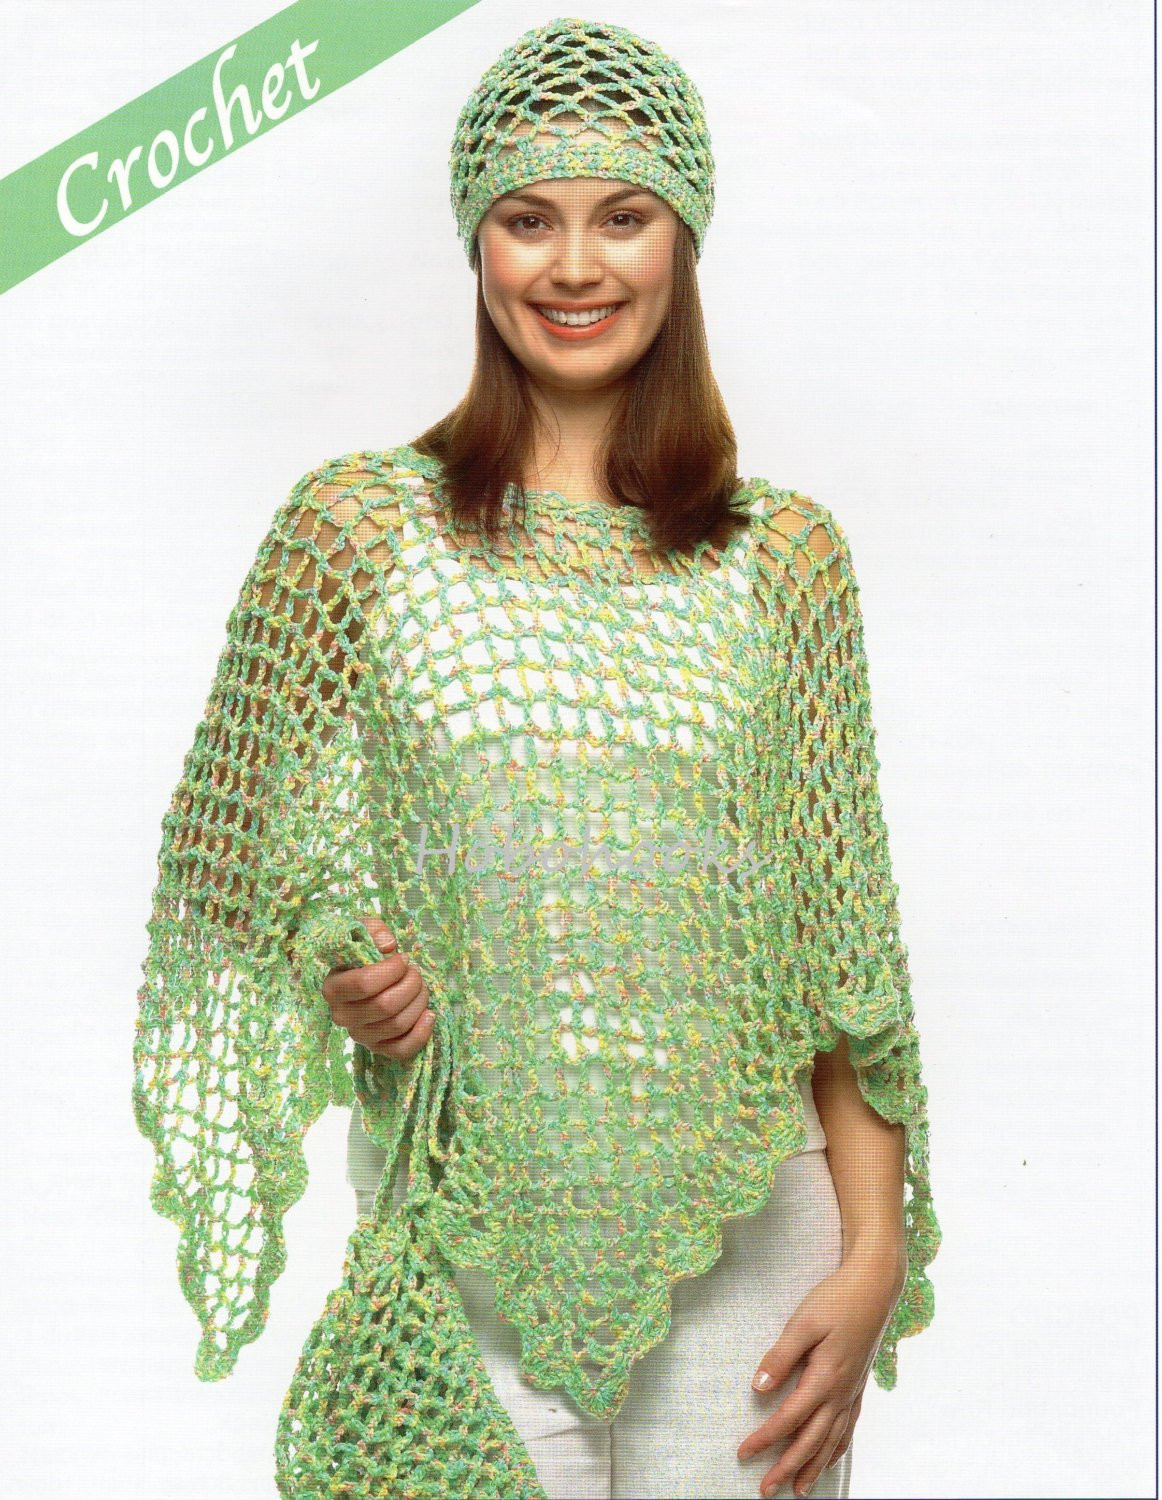 Luxury Crochet La S Poncho Hat and Bag Small Medium and Large Crochet Poncho Of Incredible 40 Photos Crochet Poncho